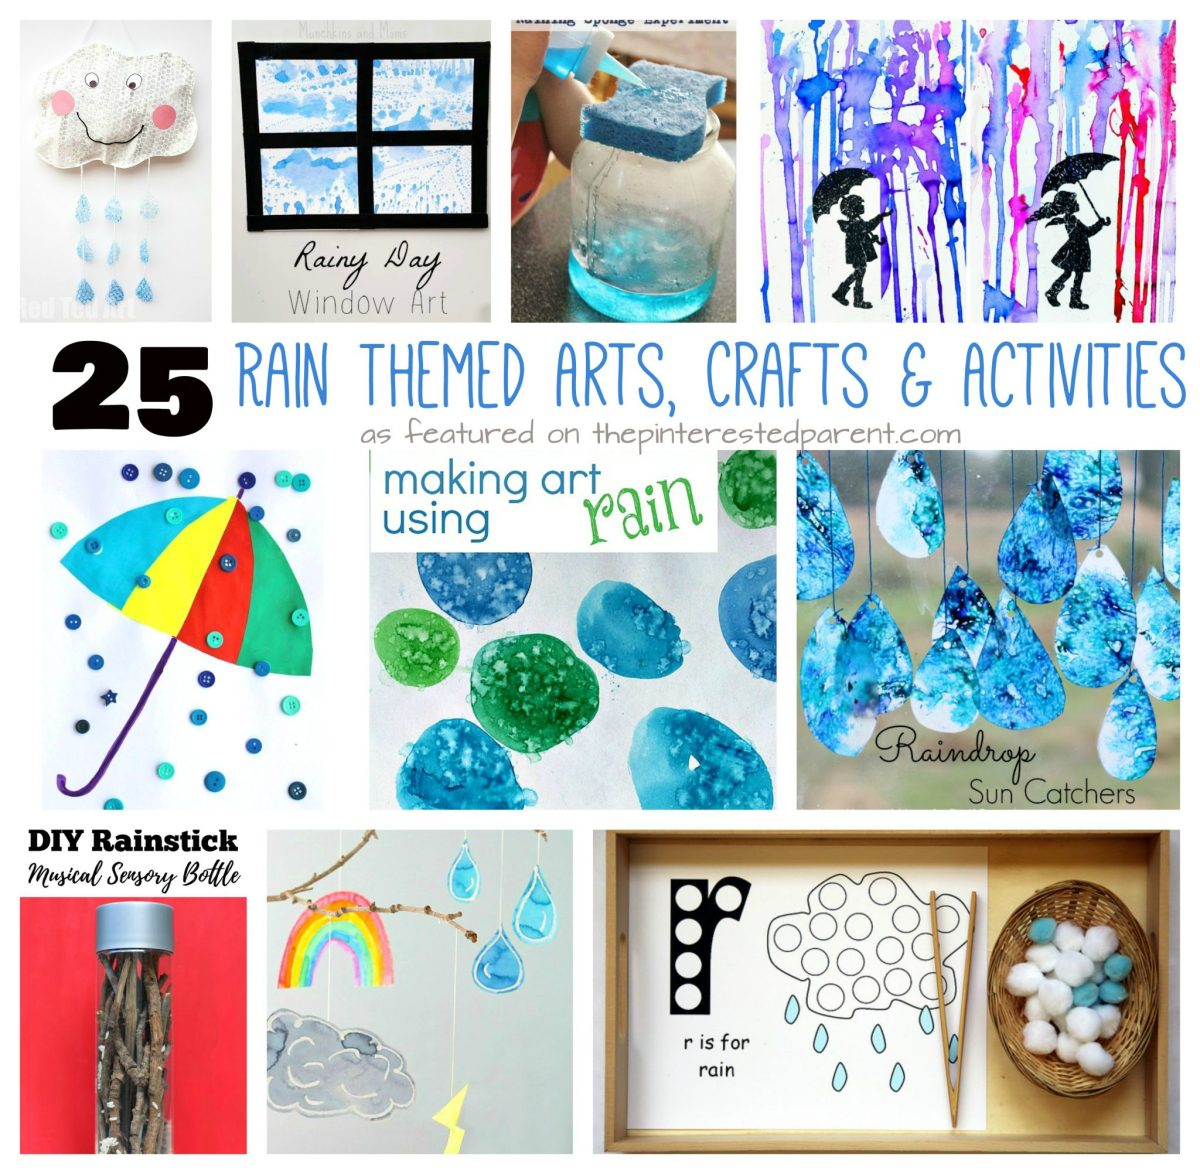 25 Rain Themed Arts, Crafts & Activities